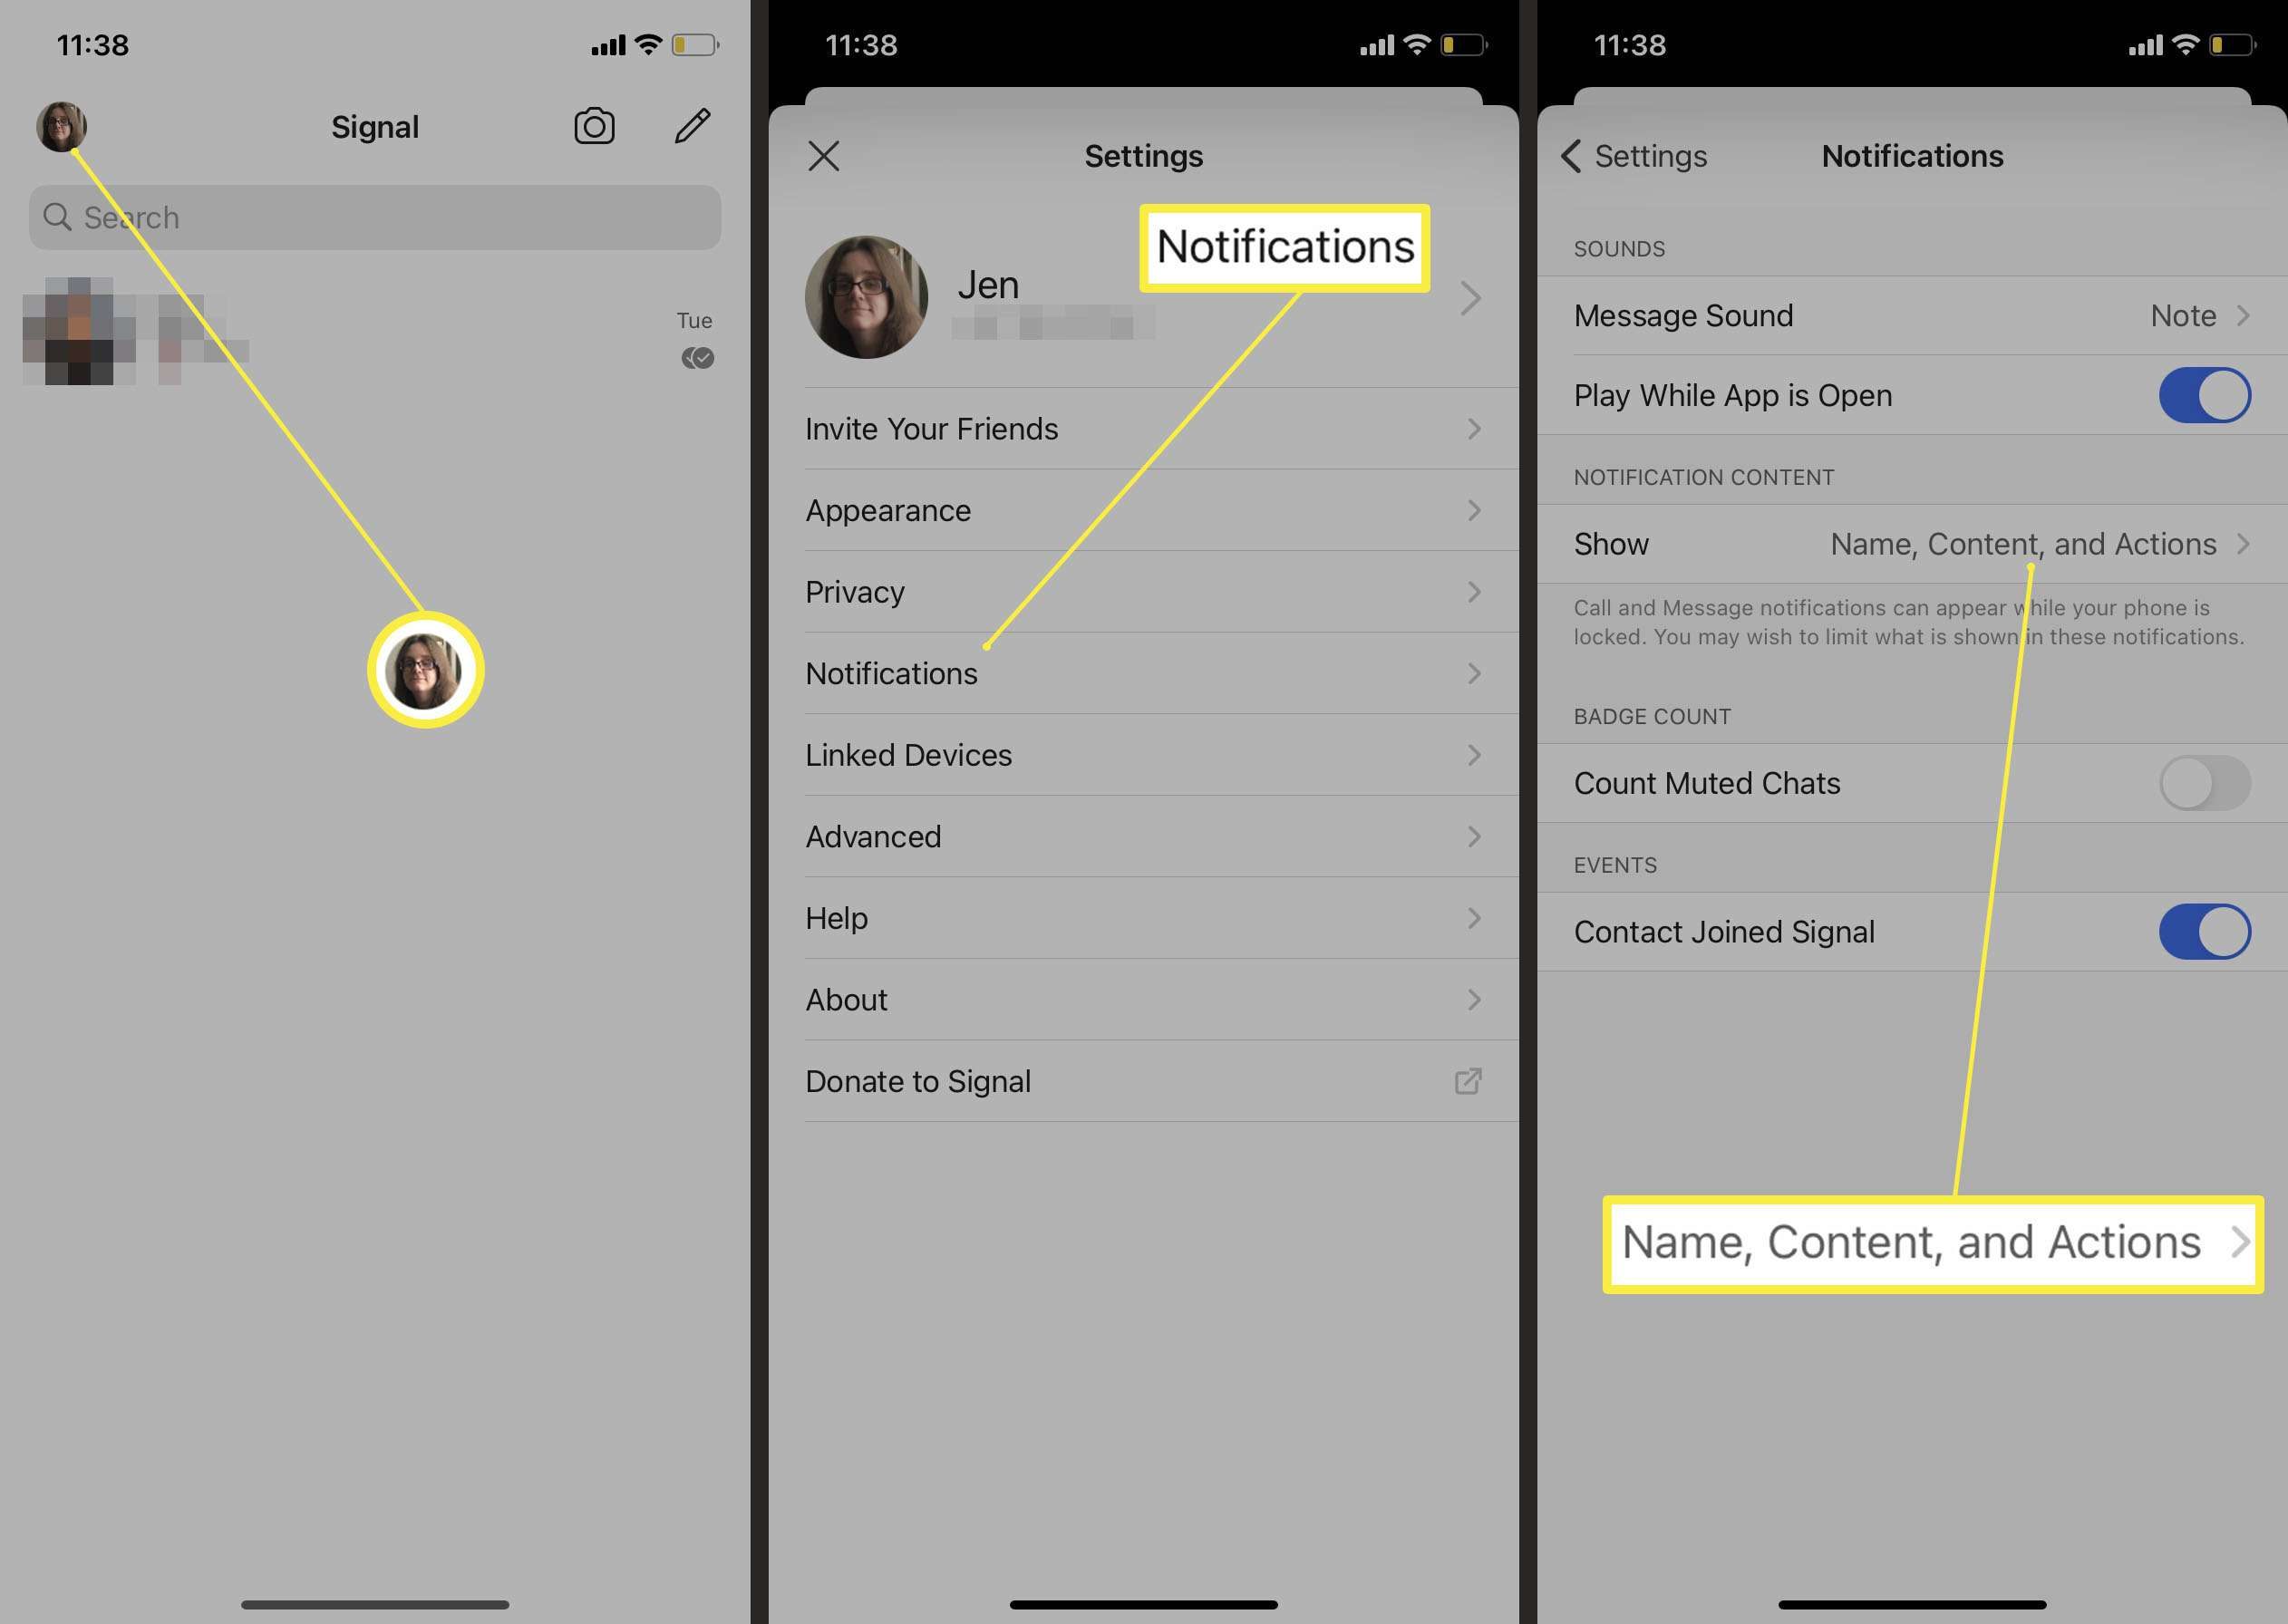 Signal Notification settings with Name, Content and Actions highlighted